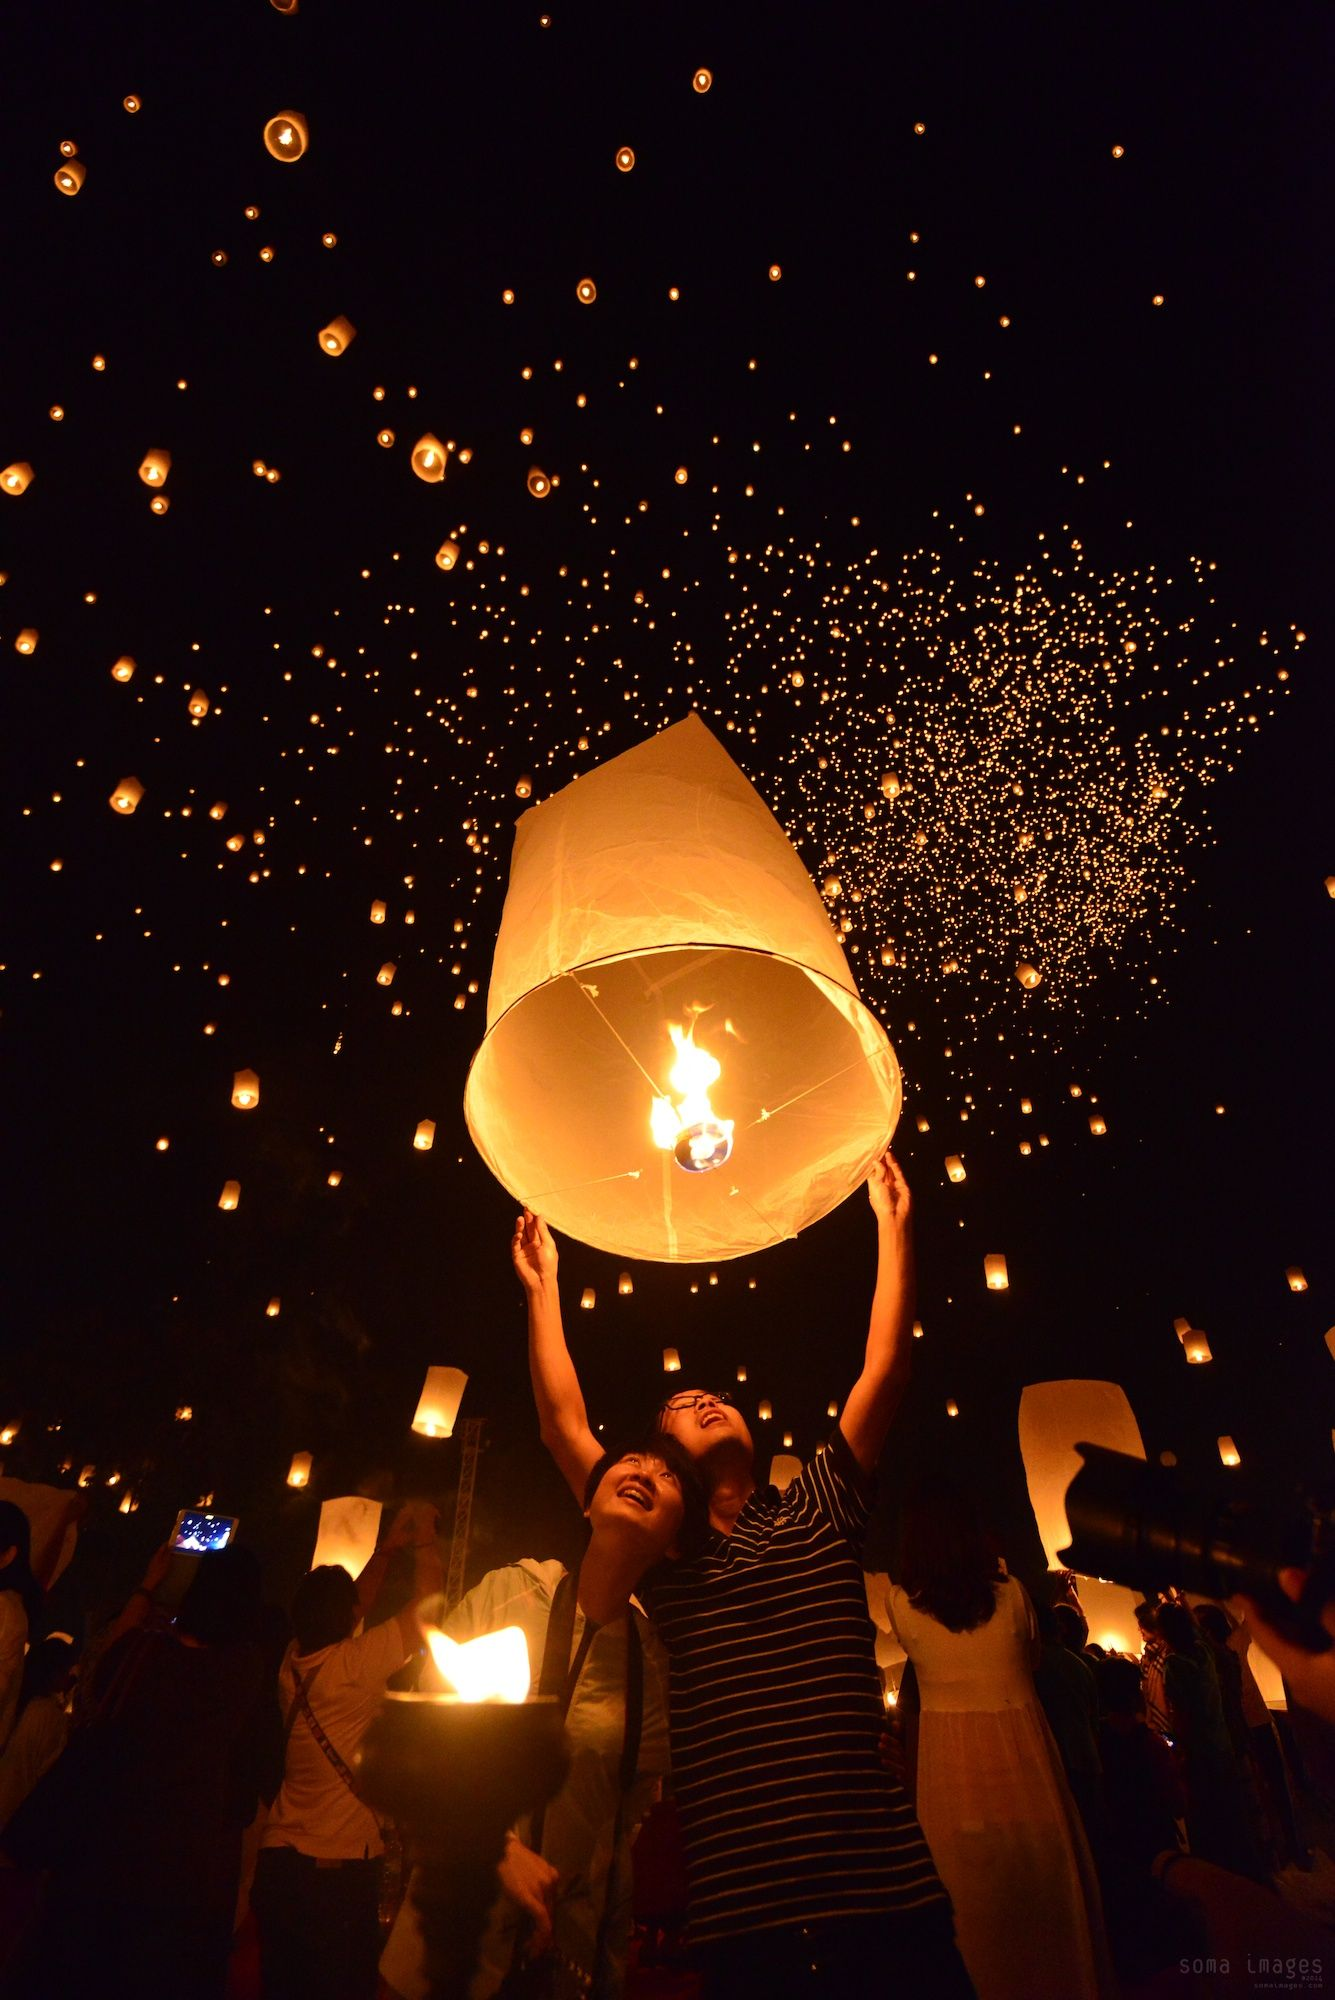 Sky Lanterns Search Romantic Couples Searching Couples